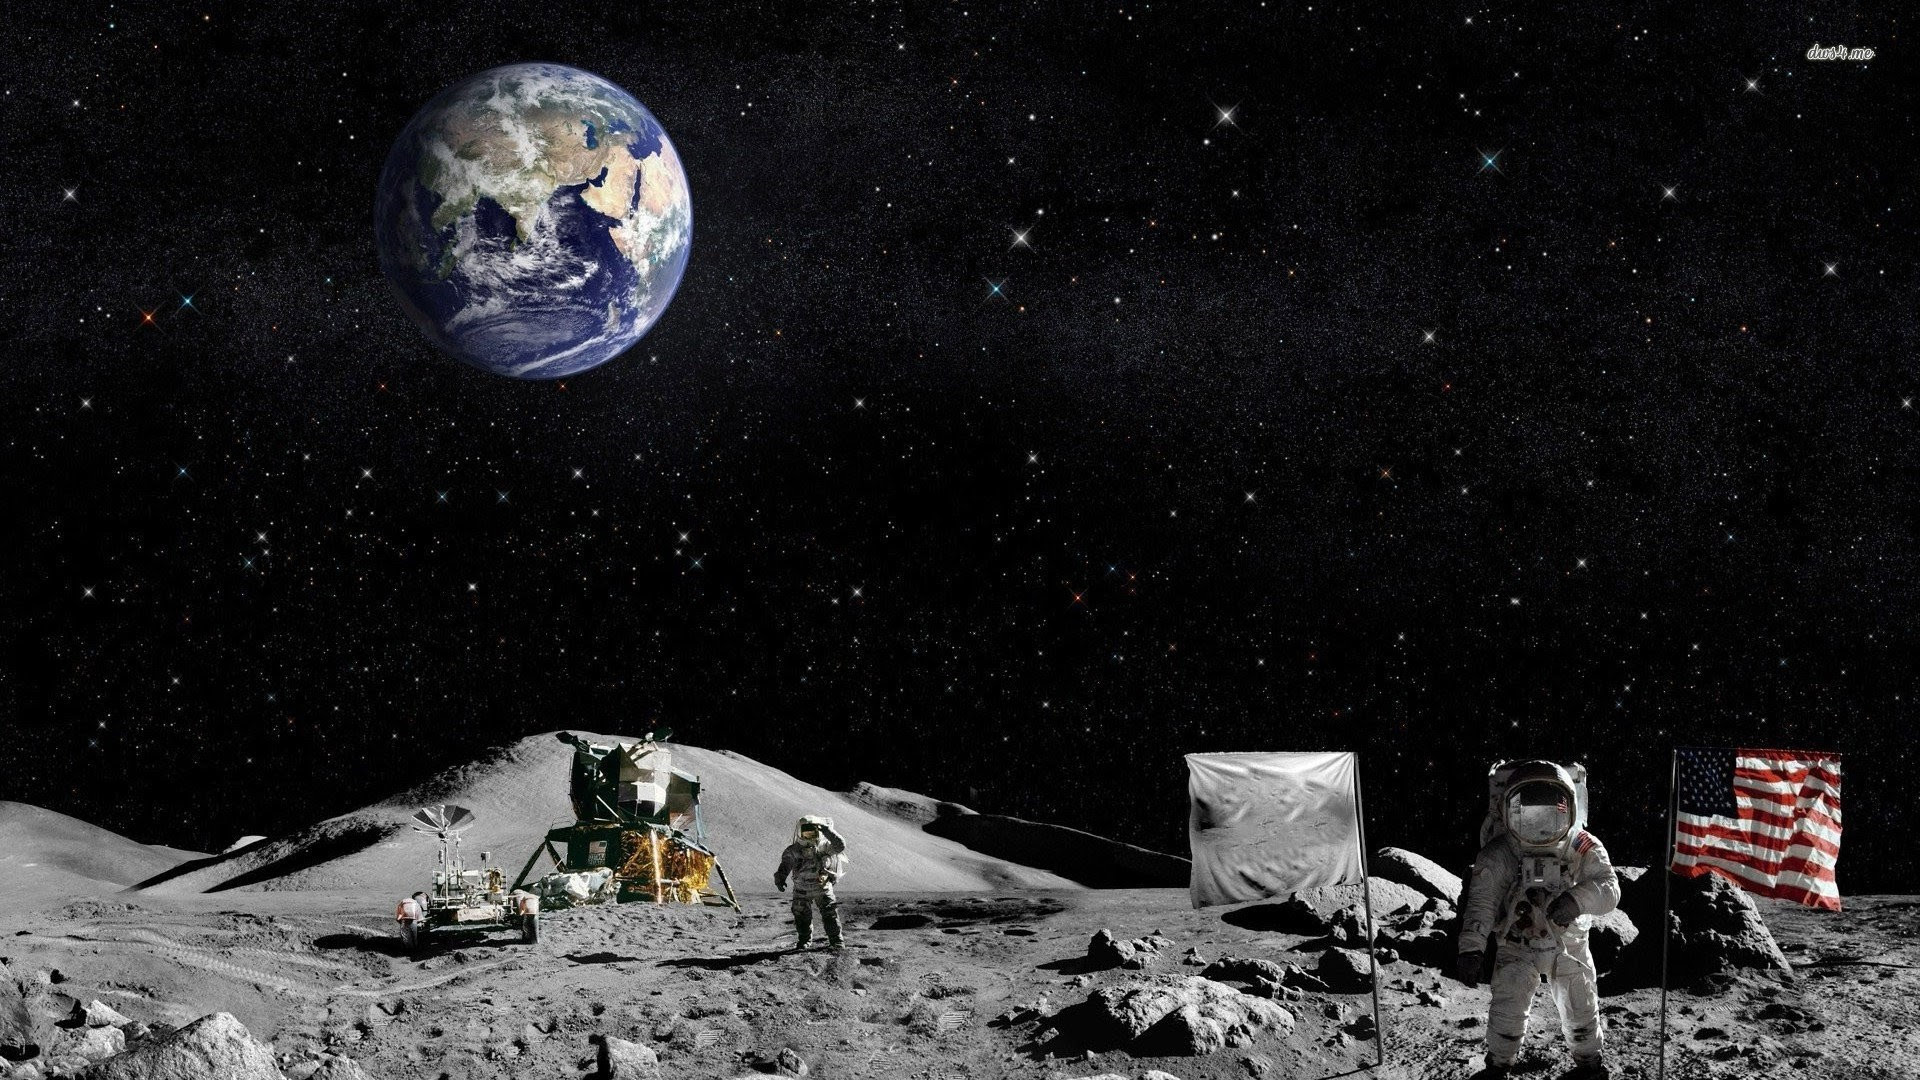 Astronaut On The Moon Wallpaper 65 Images